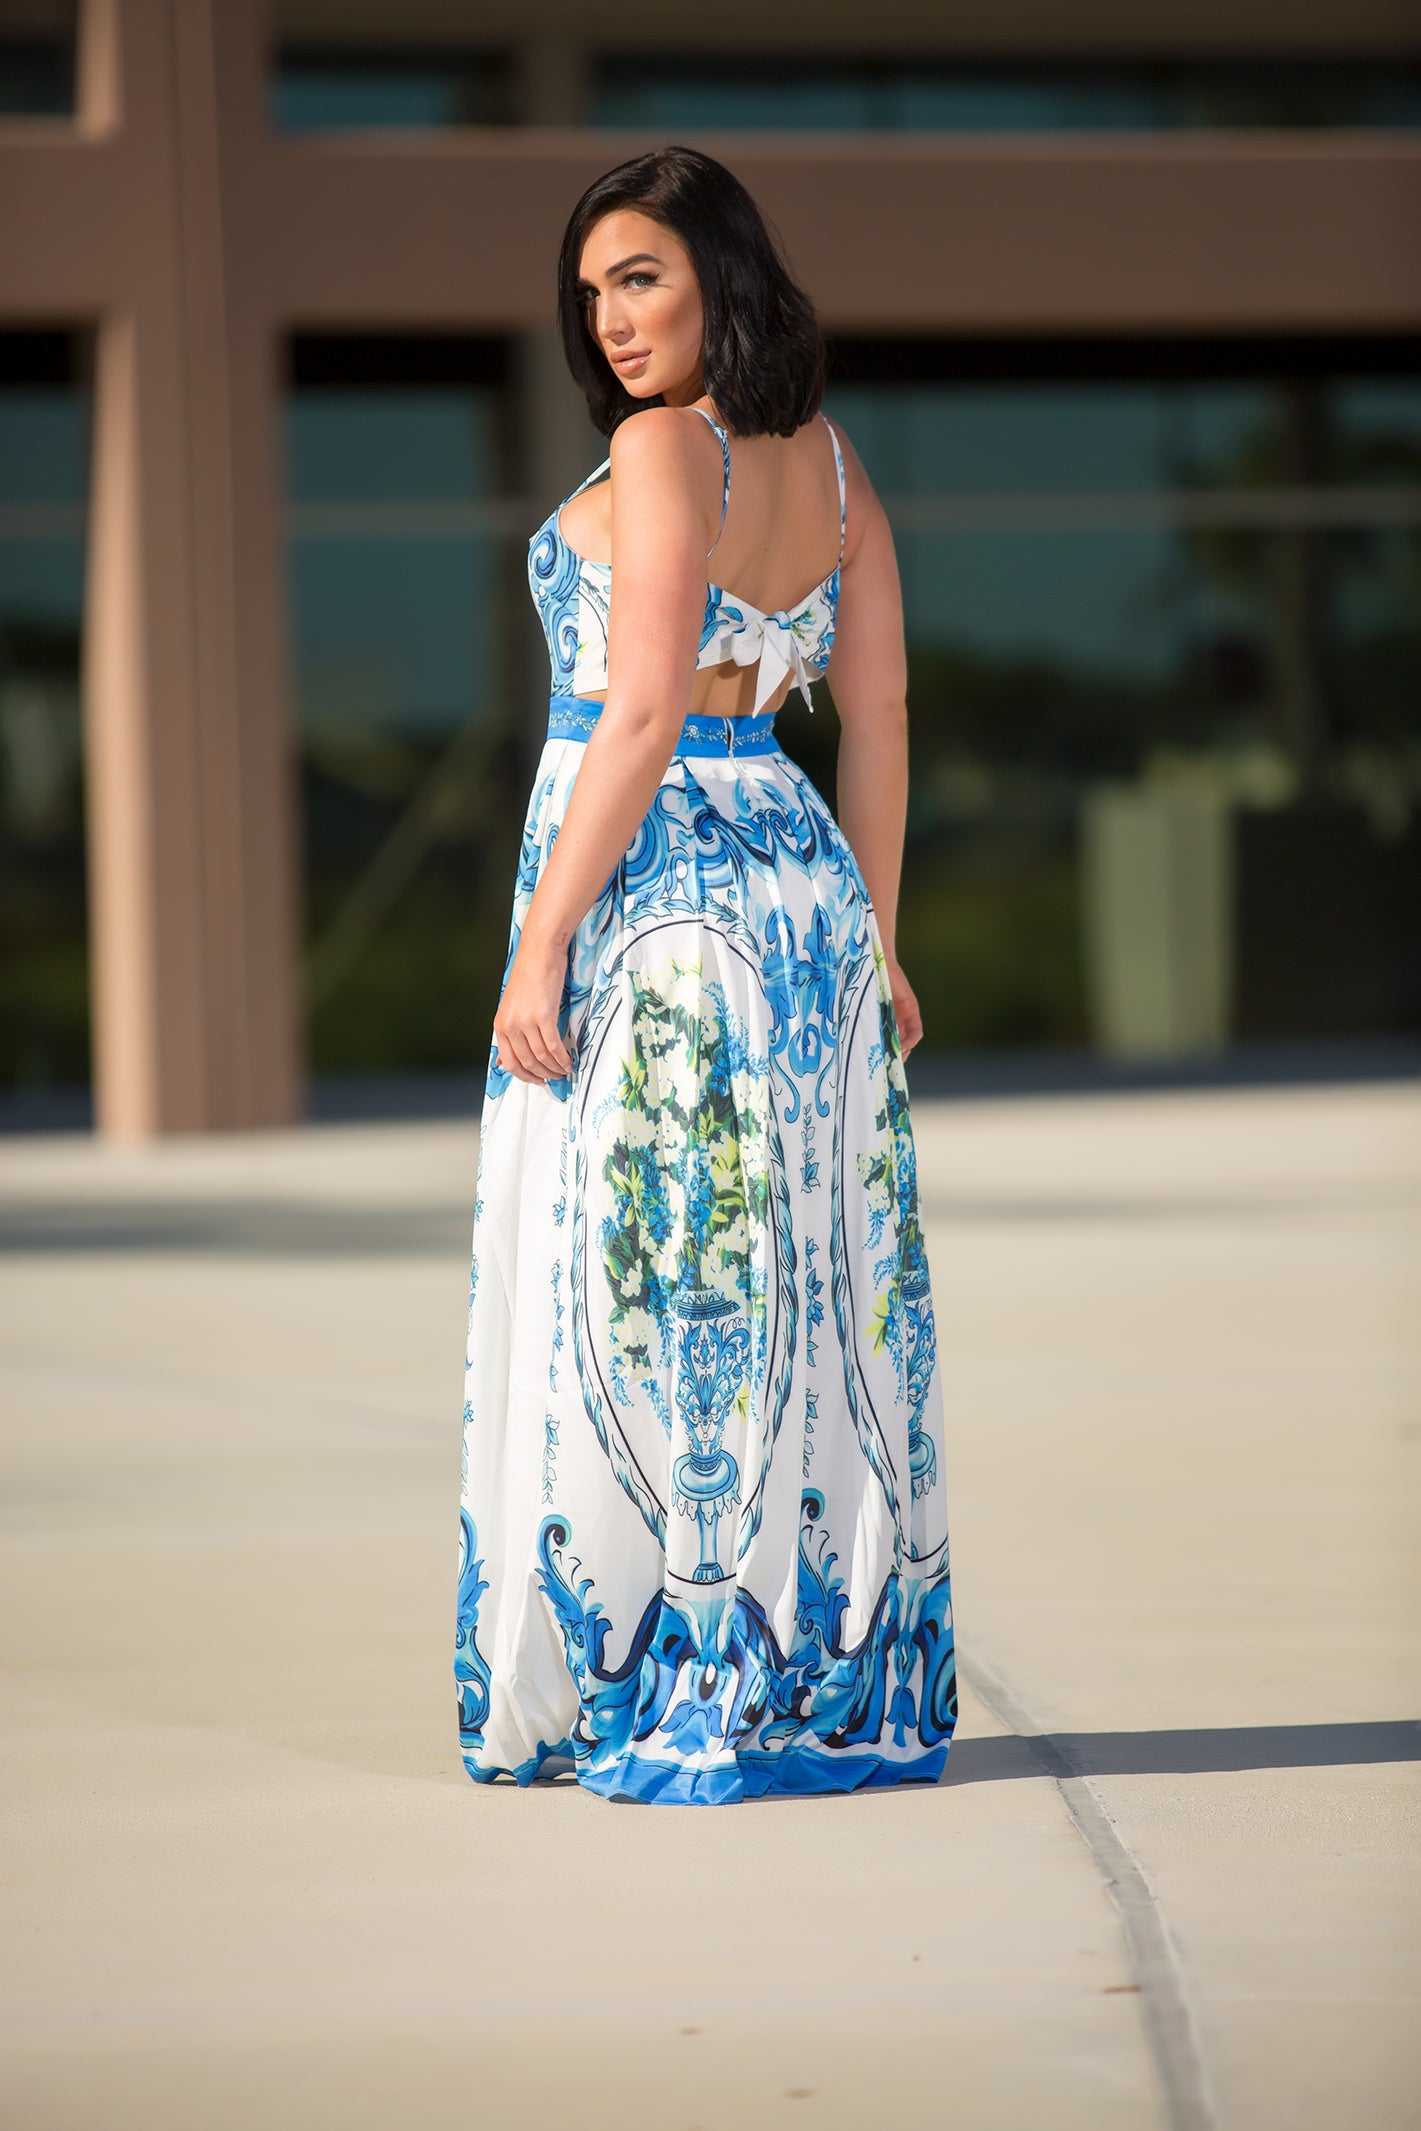 9a260ff2464 ... Amara - Miami Beach Royal Blue Maxi Dress - Multi - Semai House Of  fashion ...